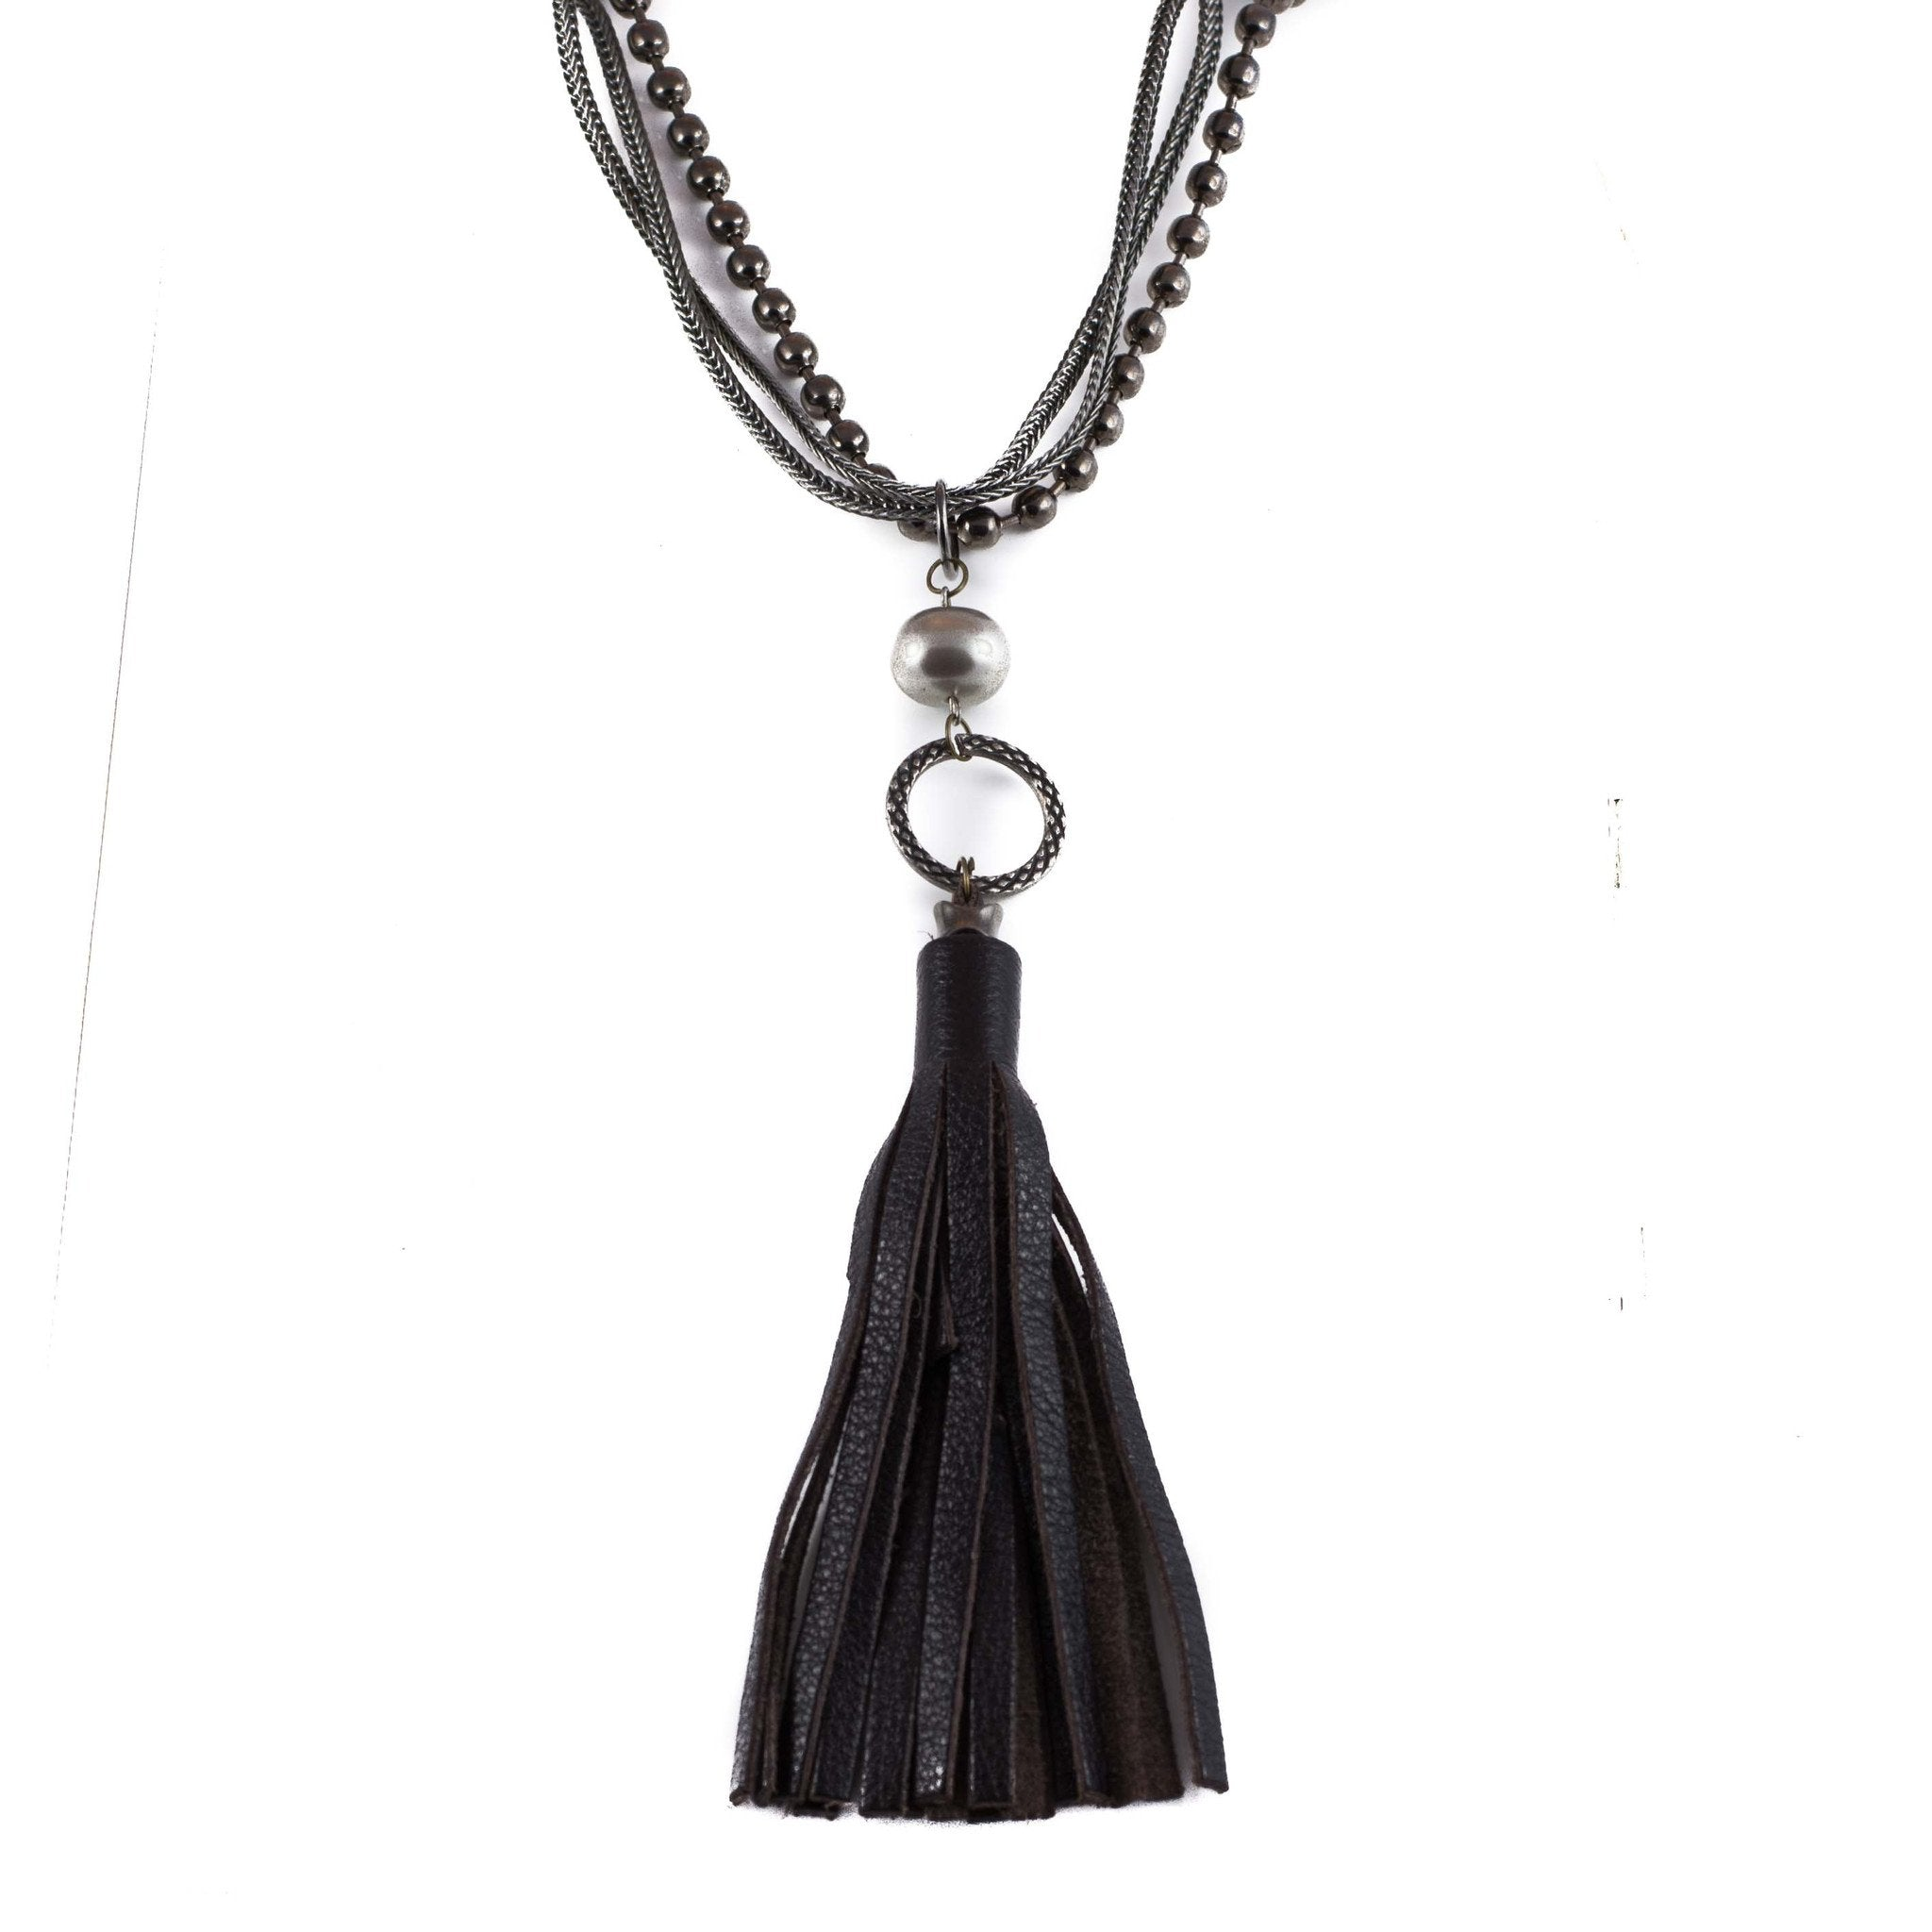 urban constrain fit d tassel redesign phoenix qlt zoom slide beaded necklace shop view hei outfitters